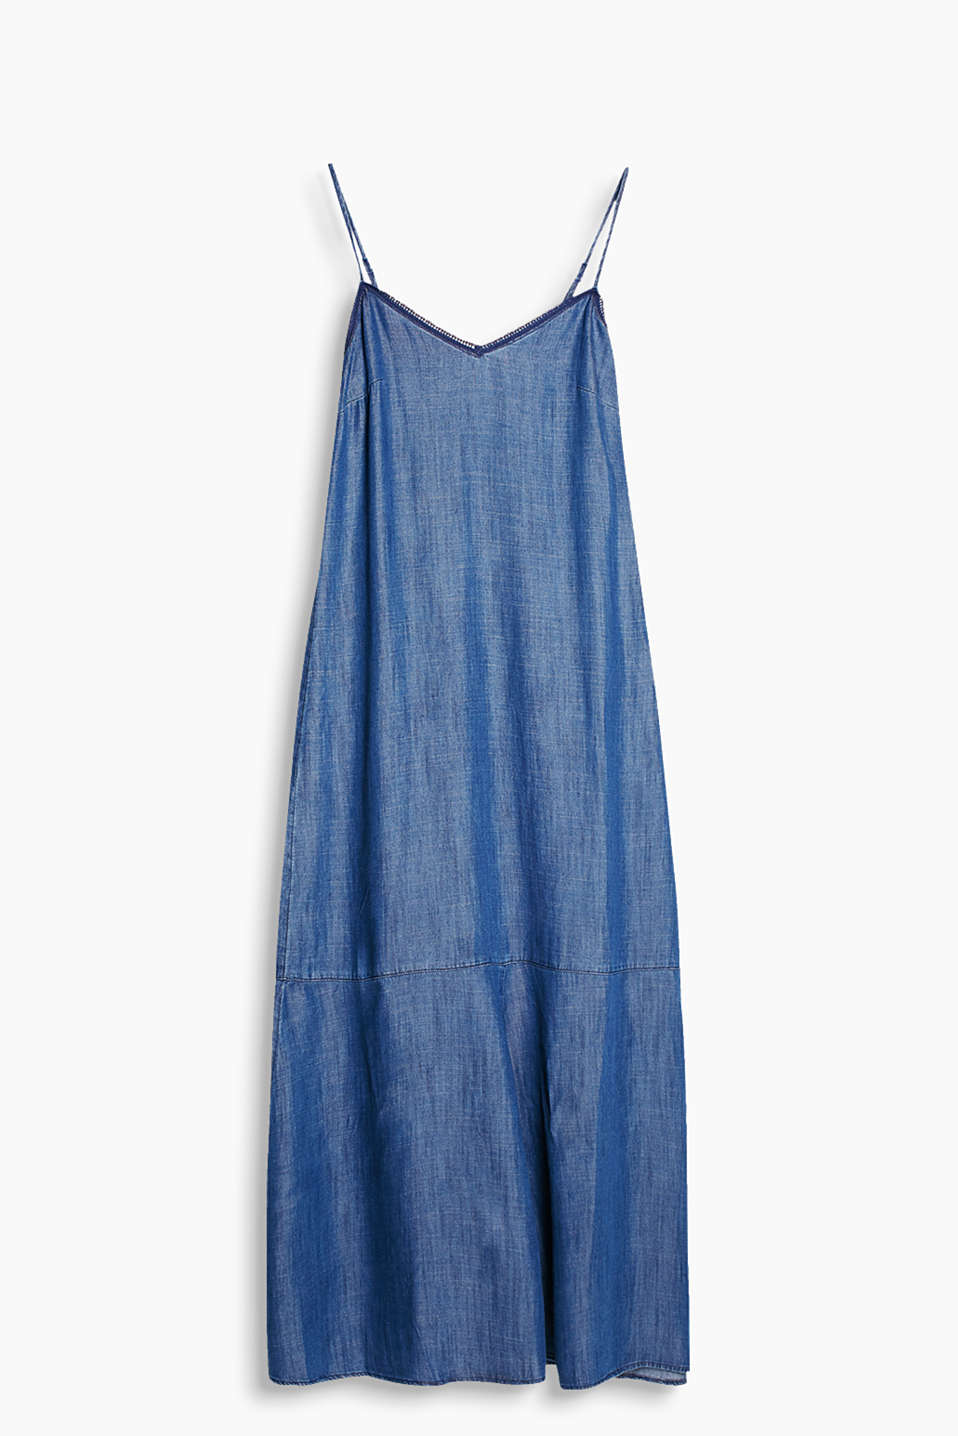 Maxi dress with adjustable spaghetti straps made of fluid, denim-effect fabric